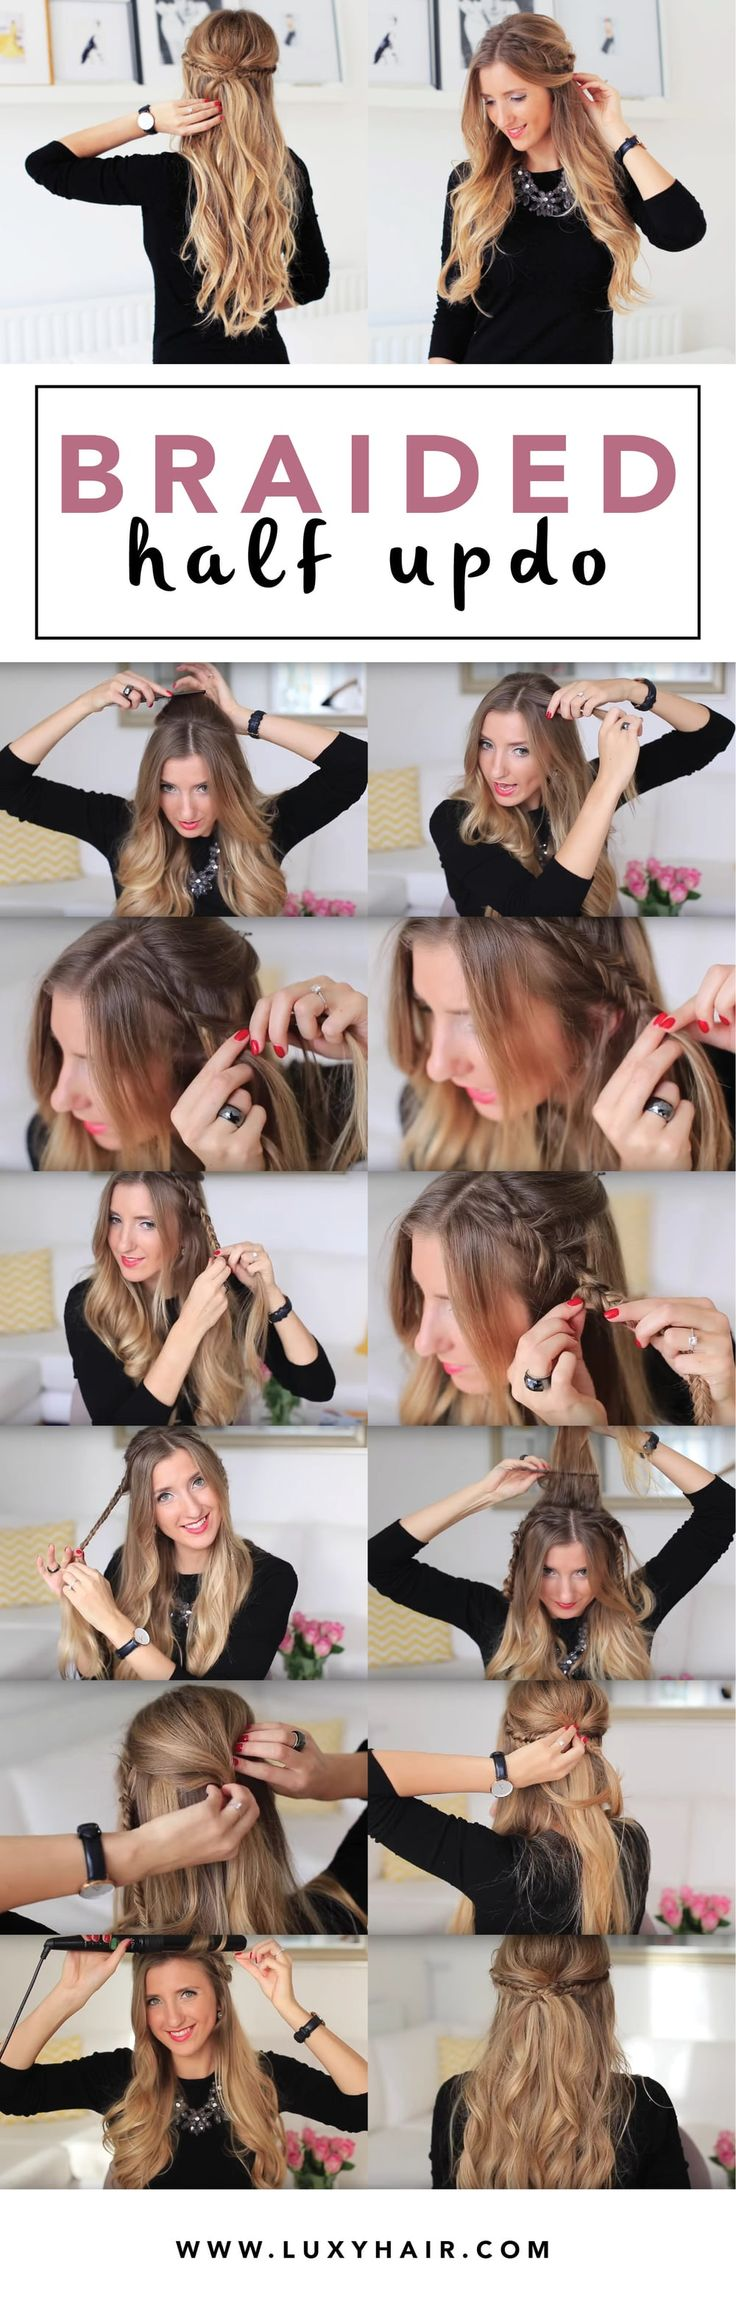 We can't get enough of pretty holiday hairstyles! In this week's tutorial, Luxy Team member - Zane, will show you how to create this super cute & easy Holiday Half Updo with her Dirty Blonde Luxy Hair Extensions. A little bit bohemian, effortless and feminine - this hairstyle is perfect for your holiday parties or any special event. Compliments are guaranteed! :) Fishtail braid is one of Zane's all time favourite hairstyles so, of course, she had to incorporate fishtails in this look...